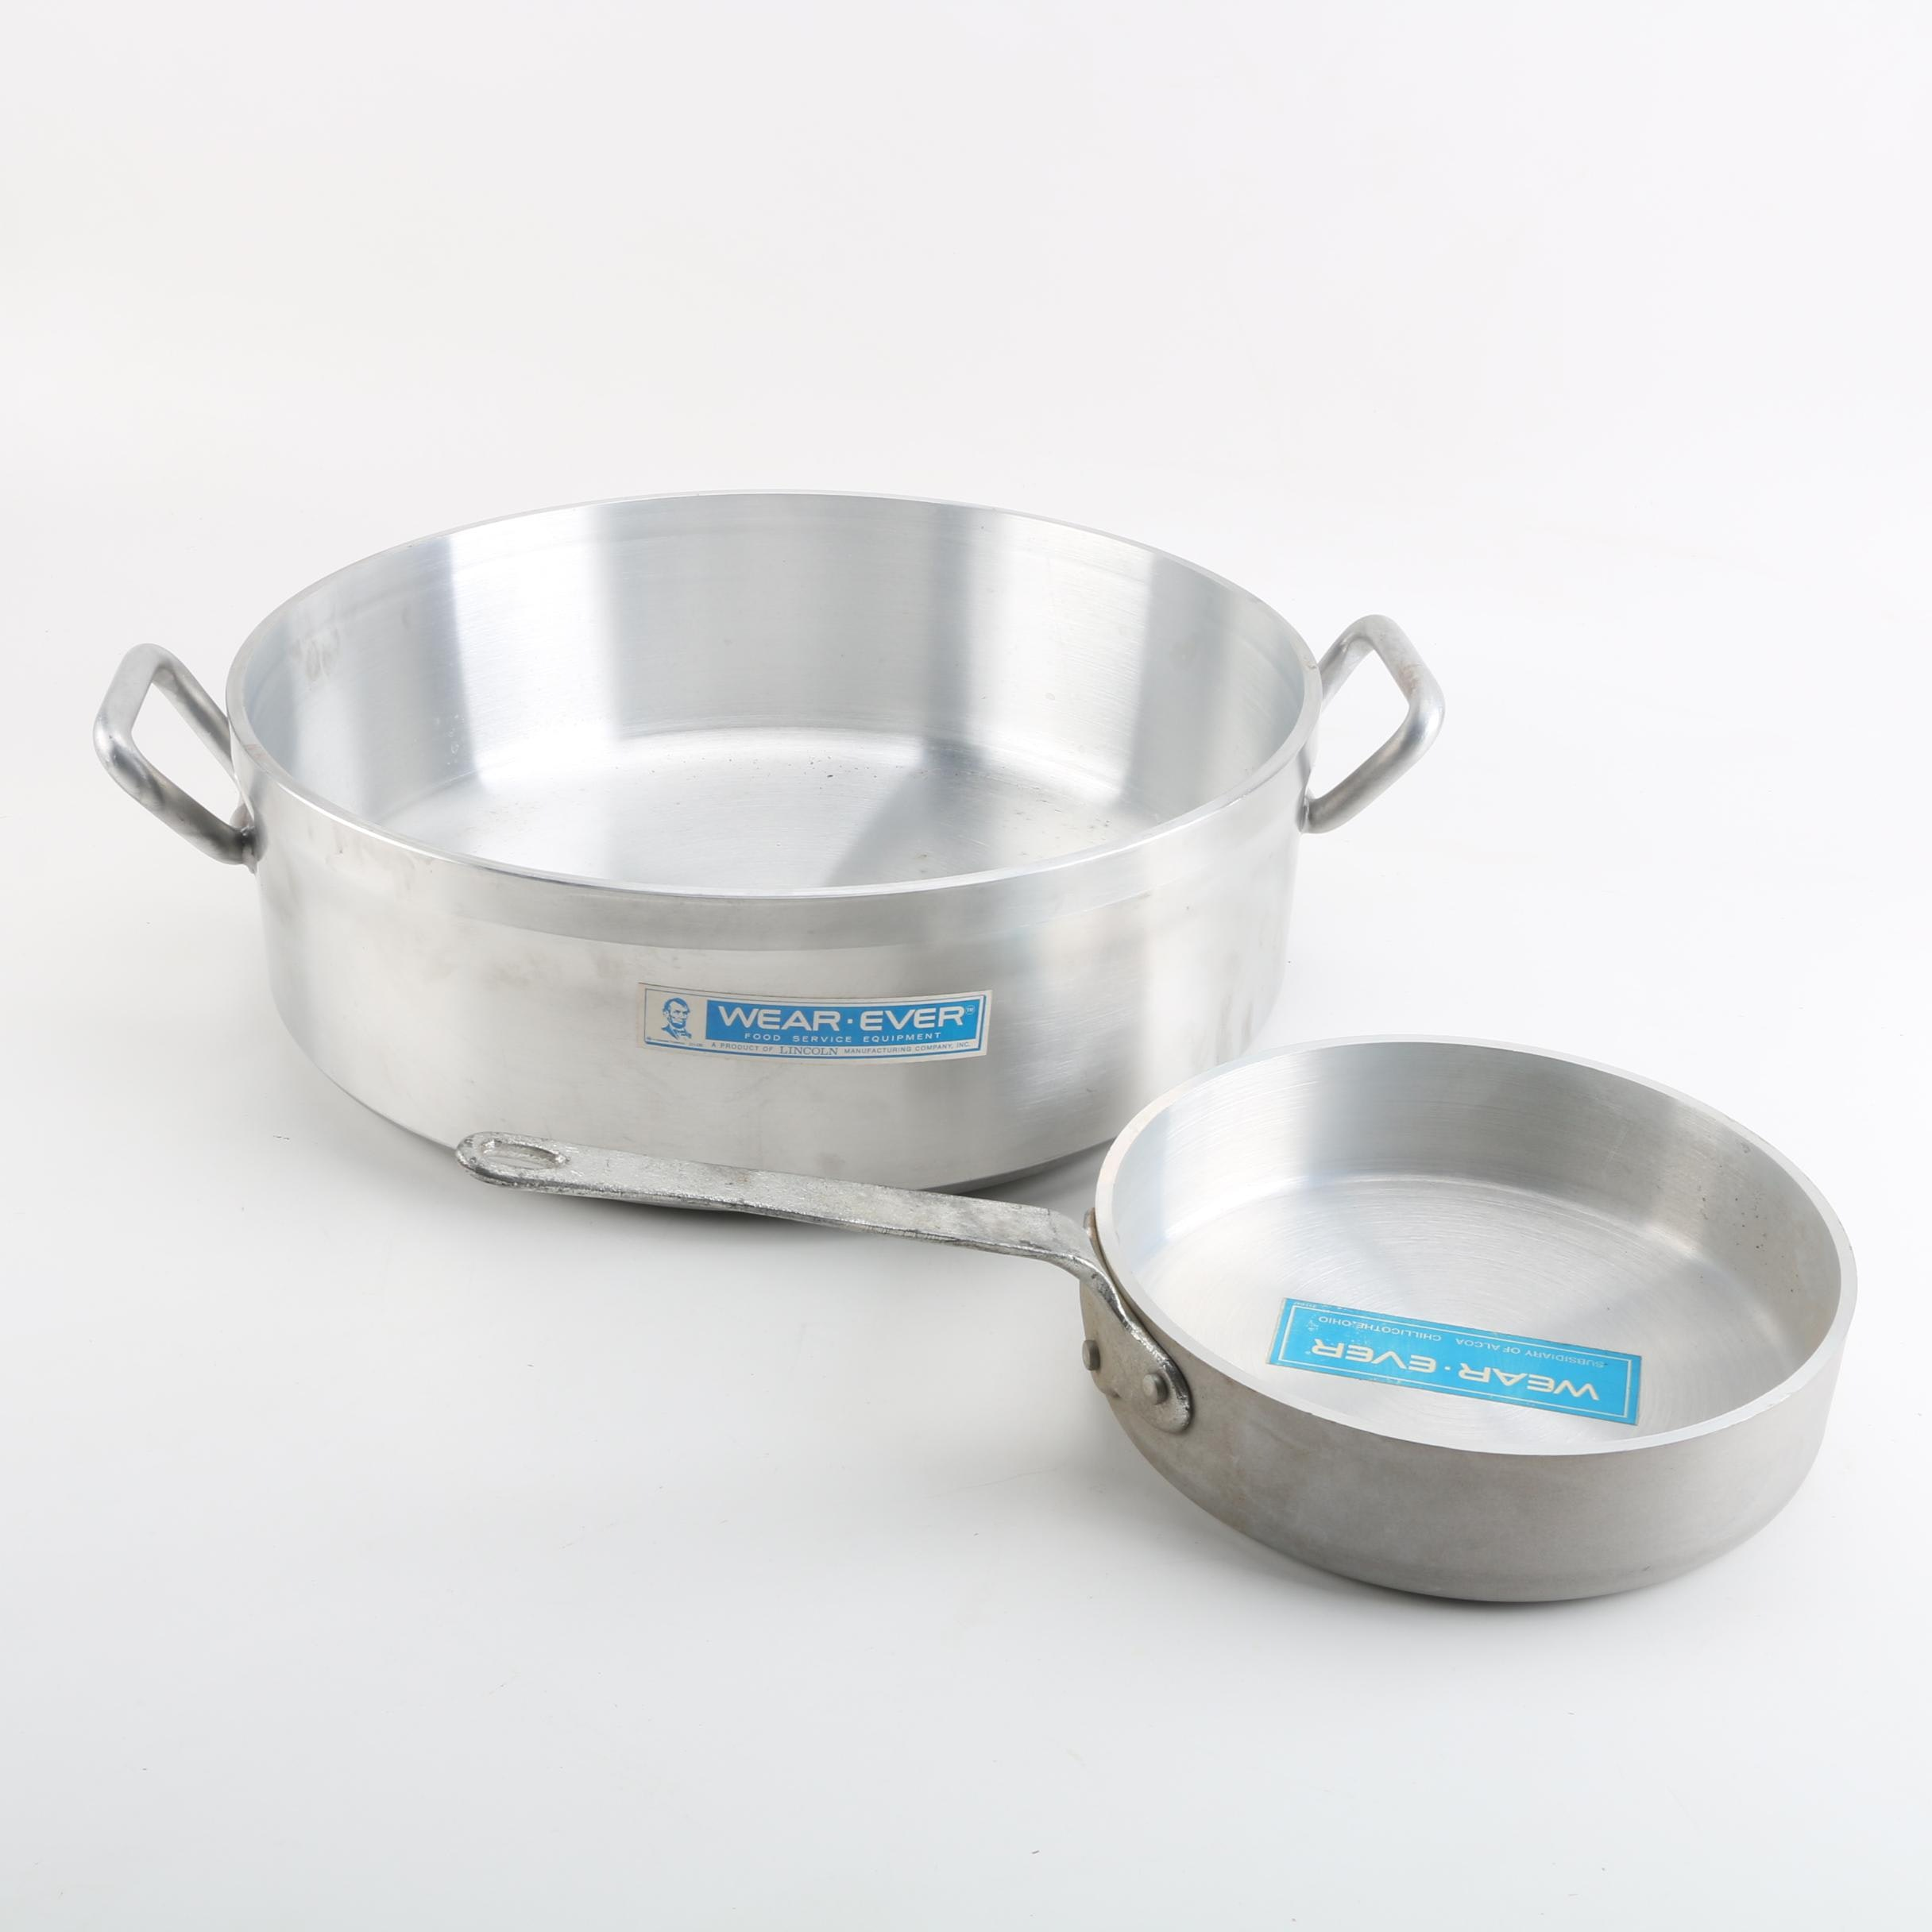 Wear-Ever Stainless Steel Cookware Including Twenty-Four Quart Pan